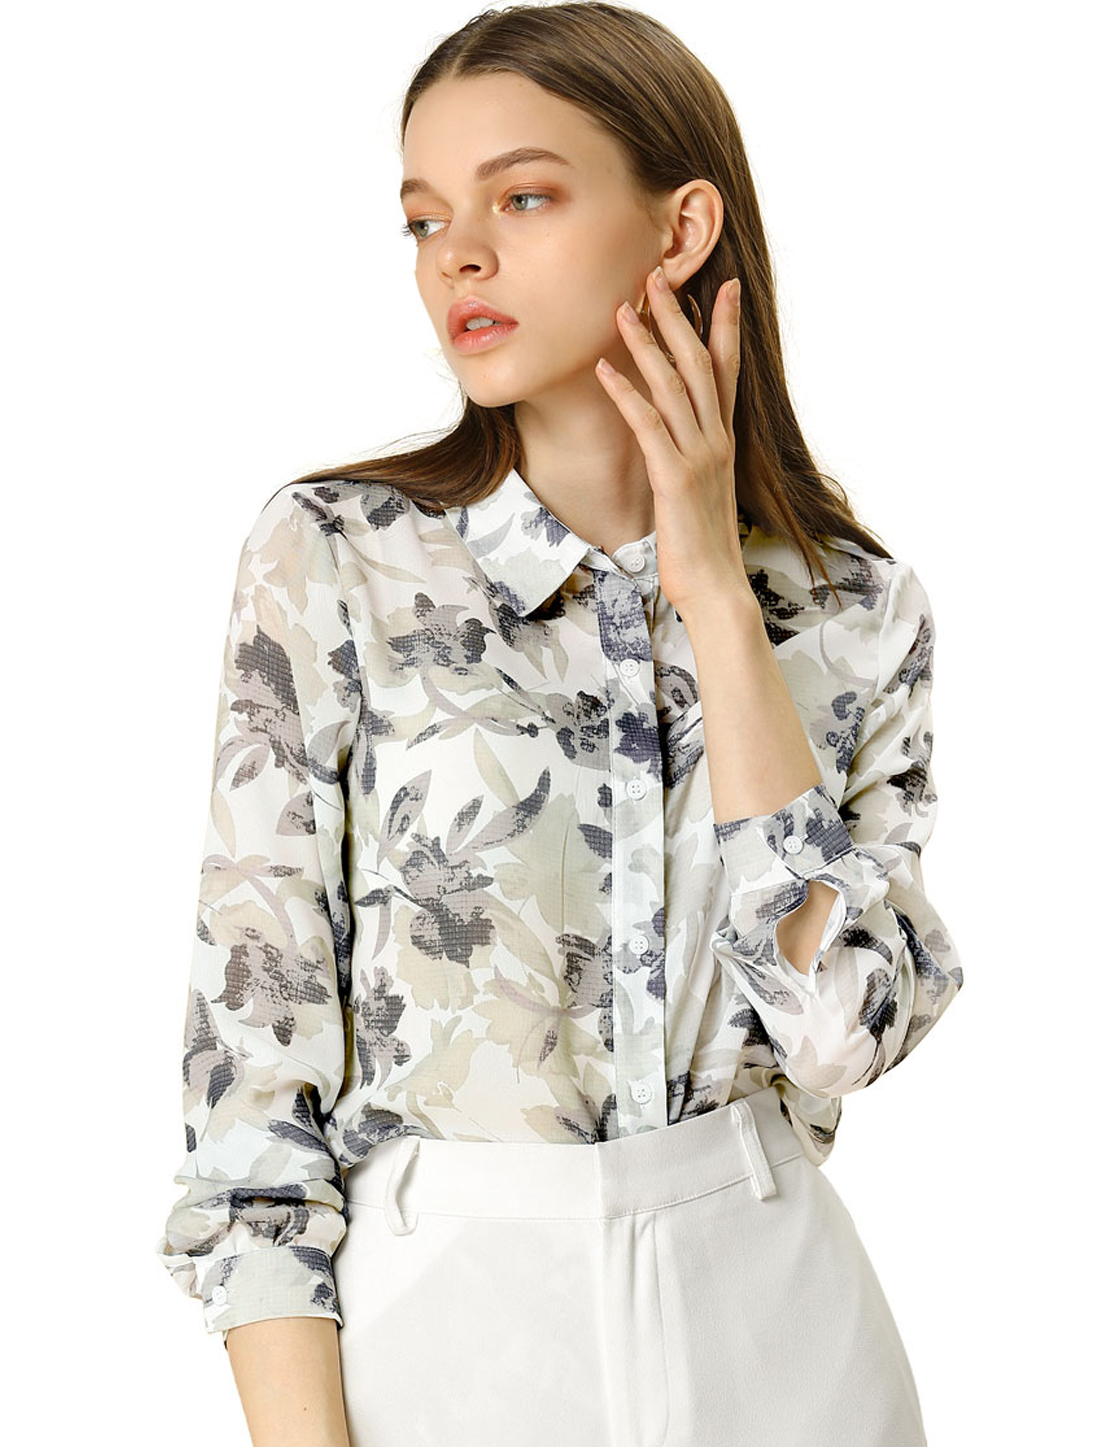 Allegra K Women's Floral Print Button Up Shirt Long Sleeves Vintage Top Gray S